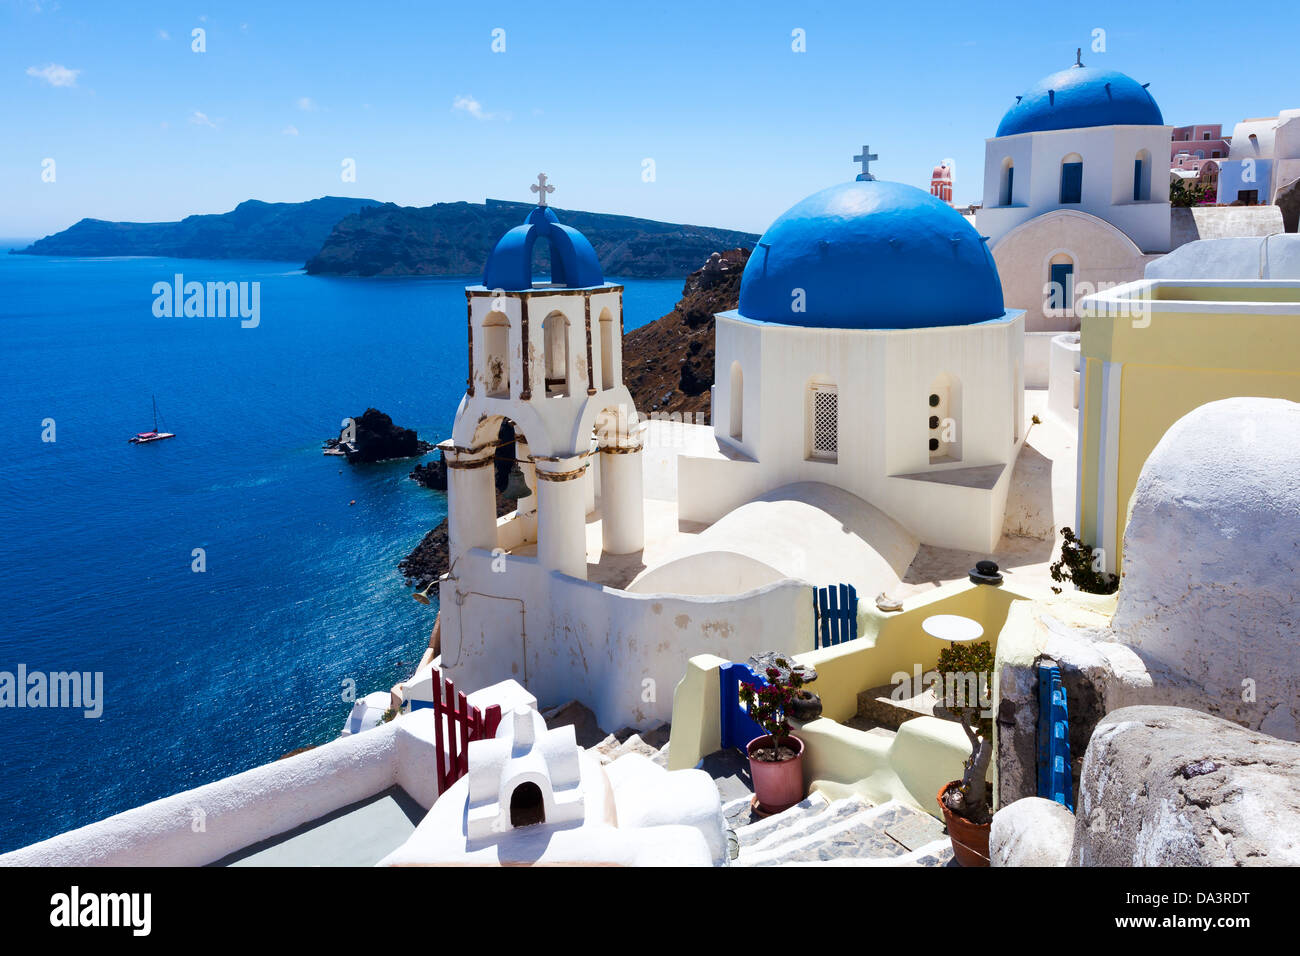 Blue domed churches on the Caldera at Oia on the Greek Island of Santorini. - Stock Image